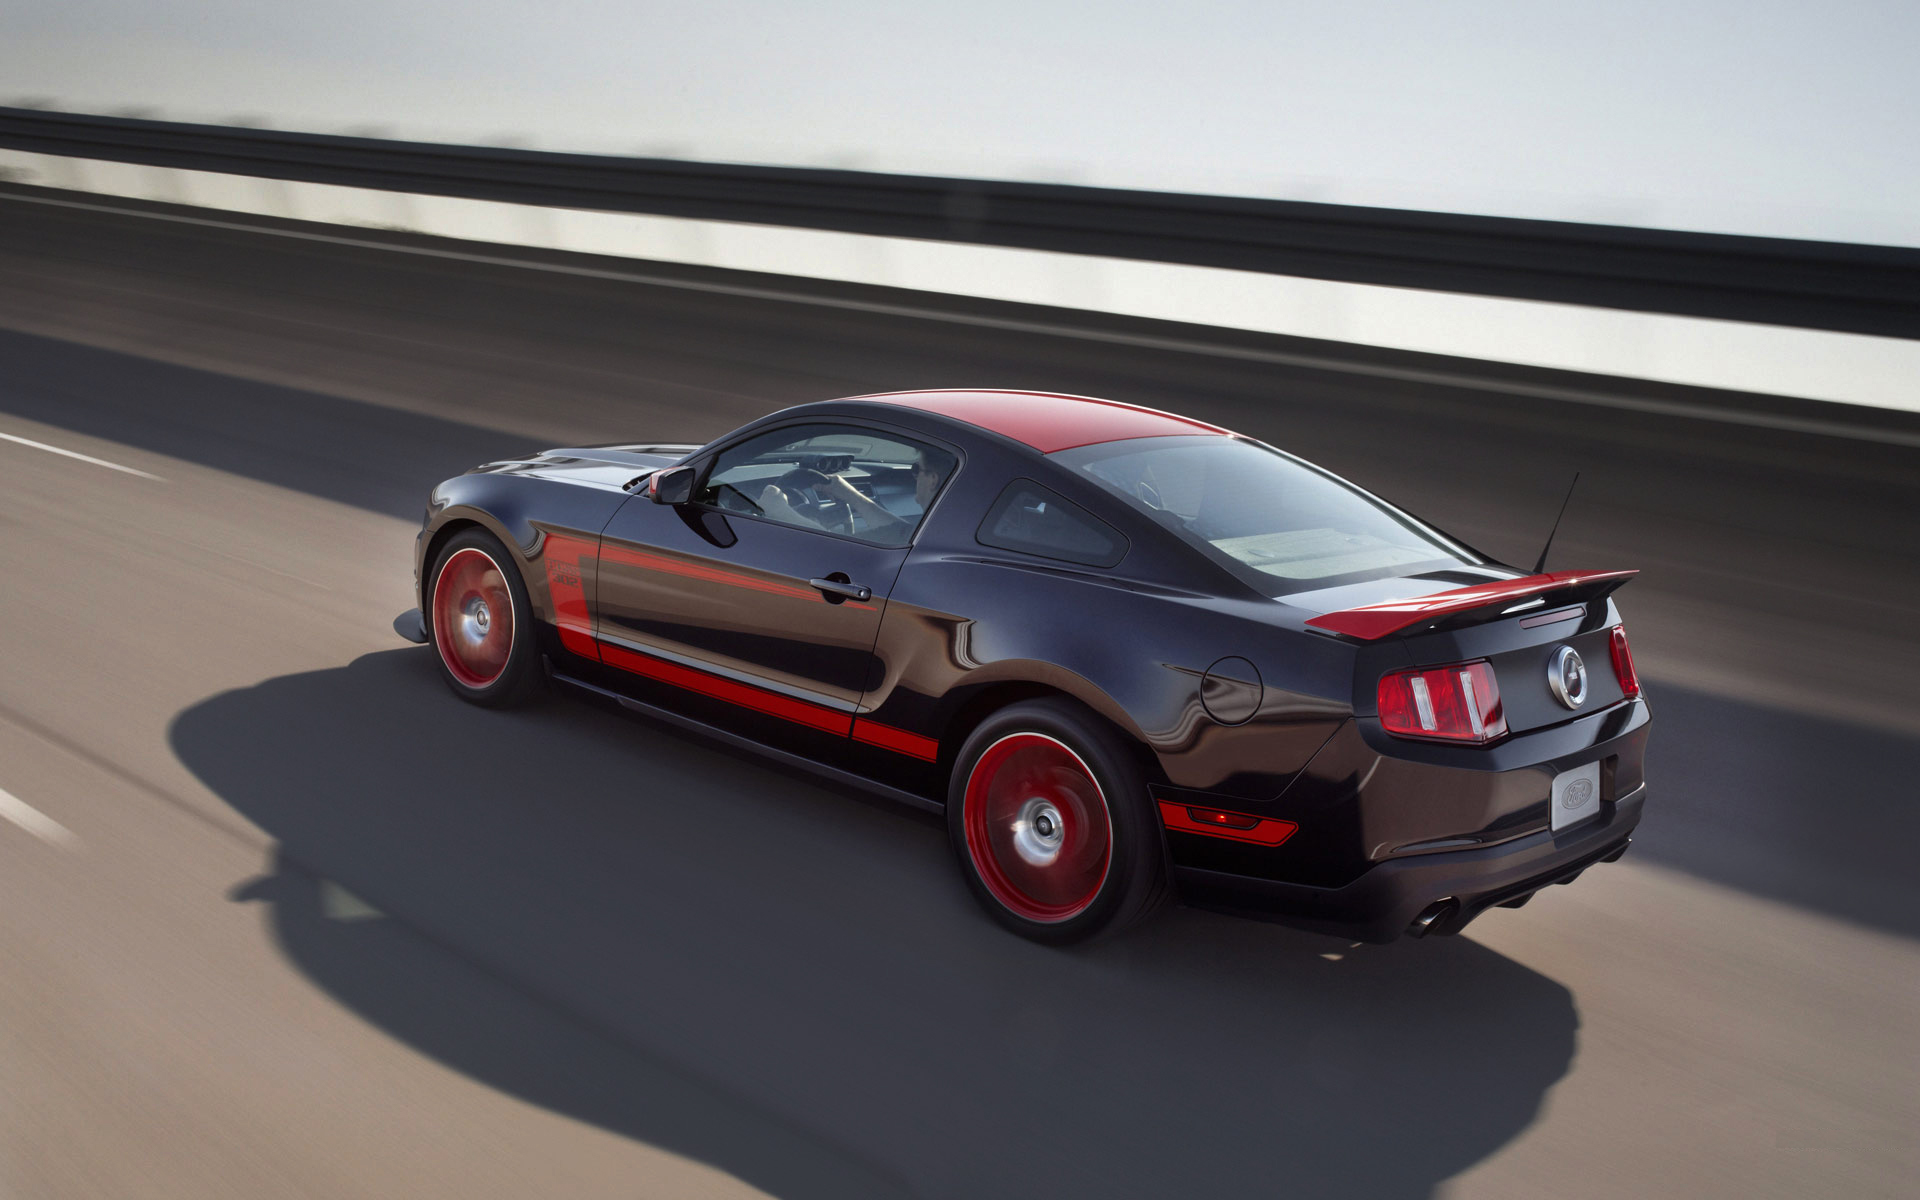 1117 Ford Mustang HD Wallpapers | Backgrounds - Wallpaper Abyss